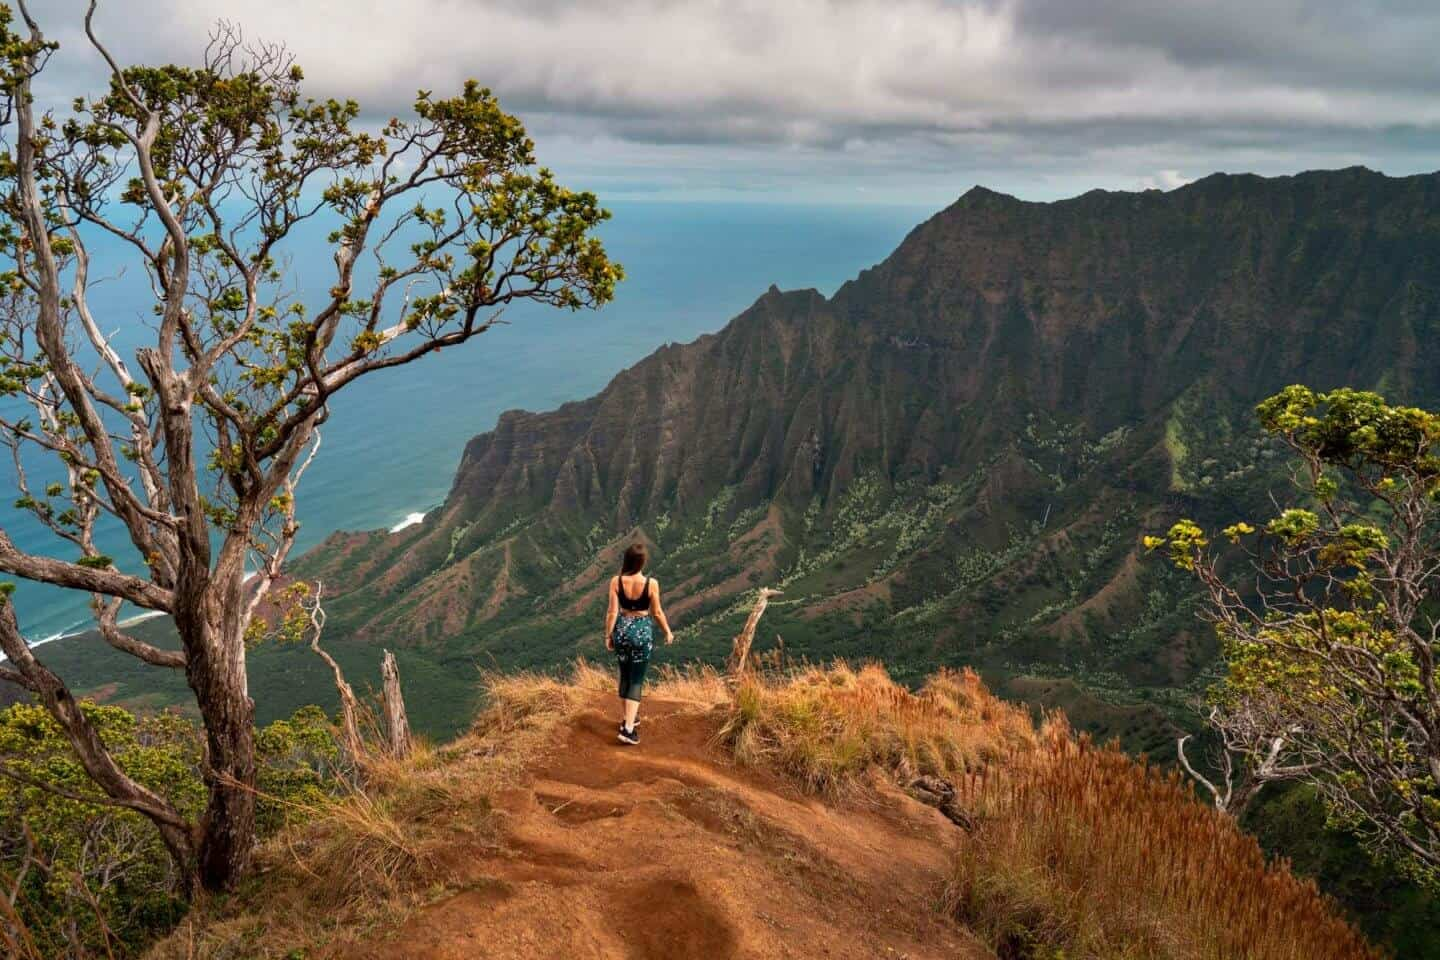 Another viewpoint on the Kalepa Ridge Trail Kauai.